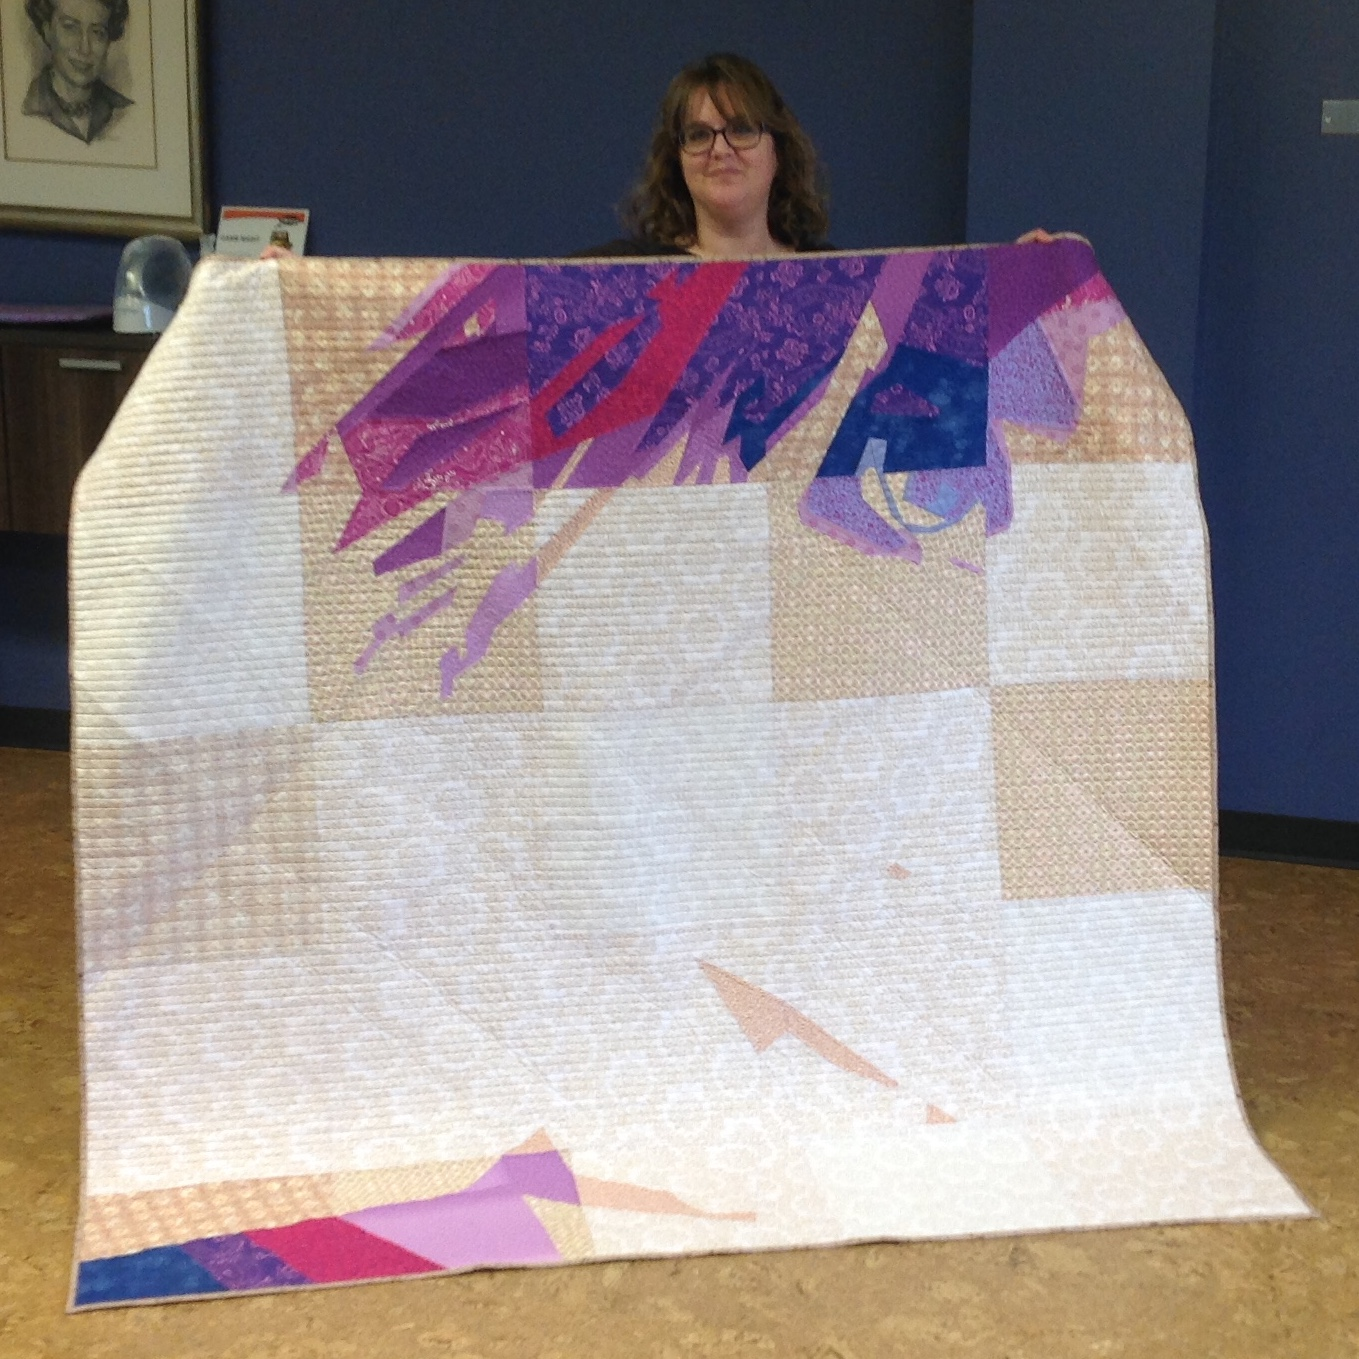 Angela Quilt Self Portrait